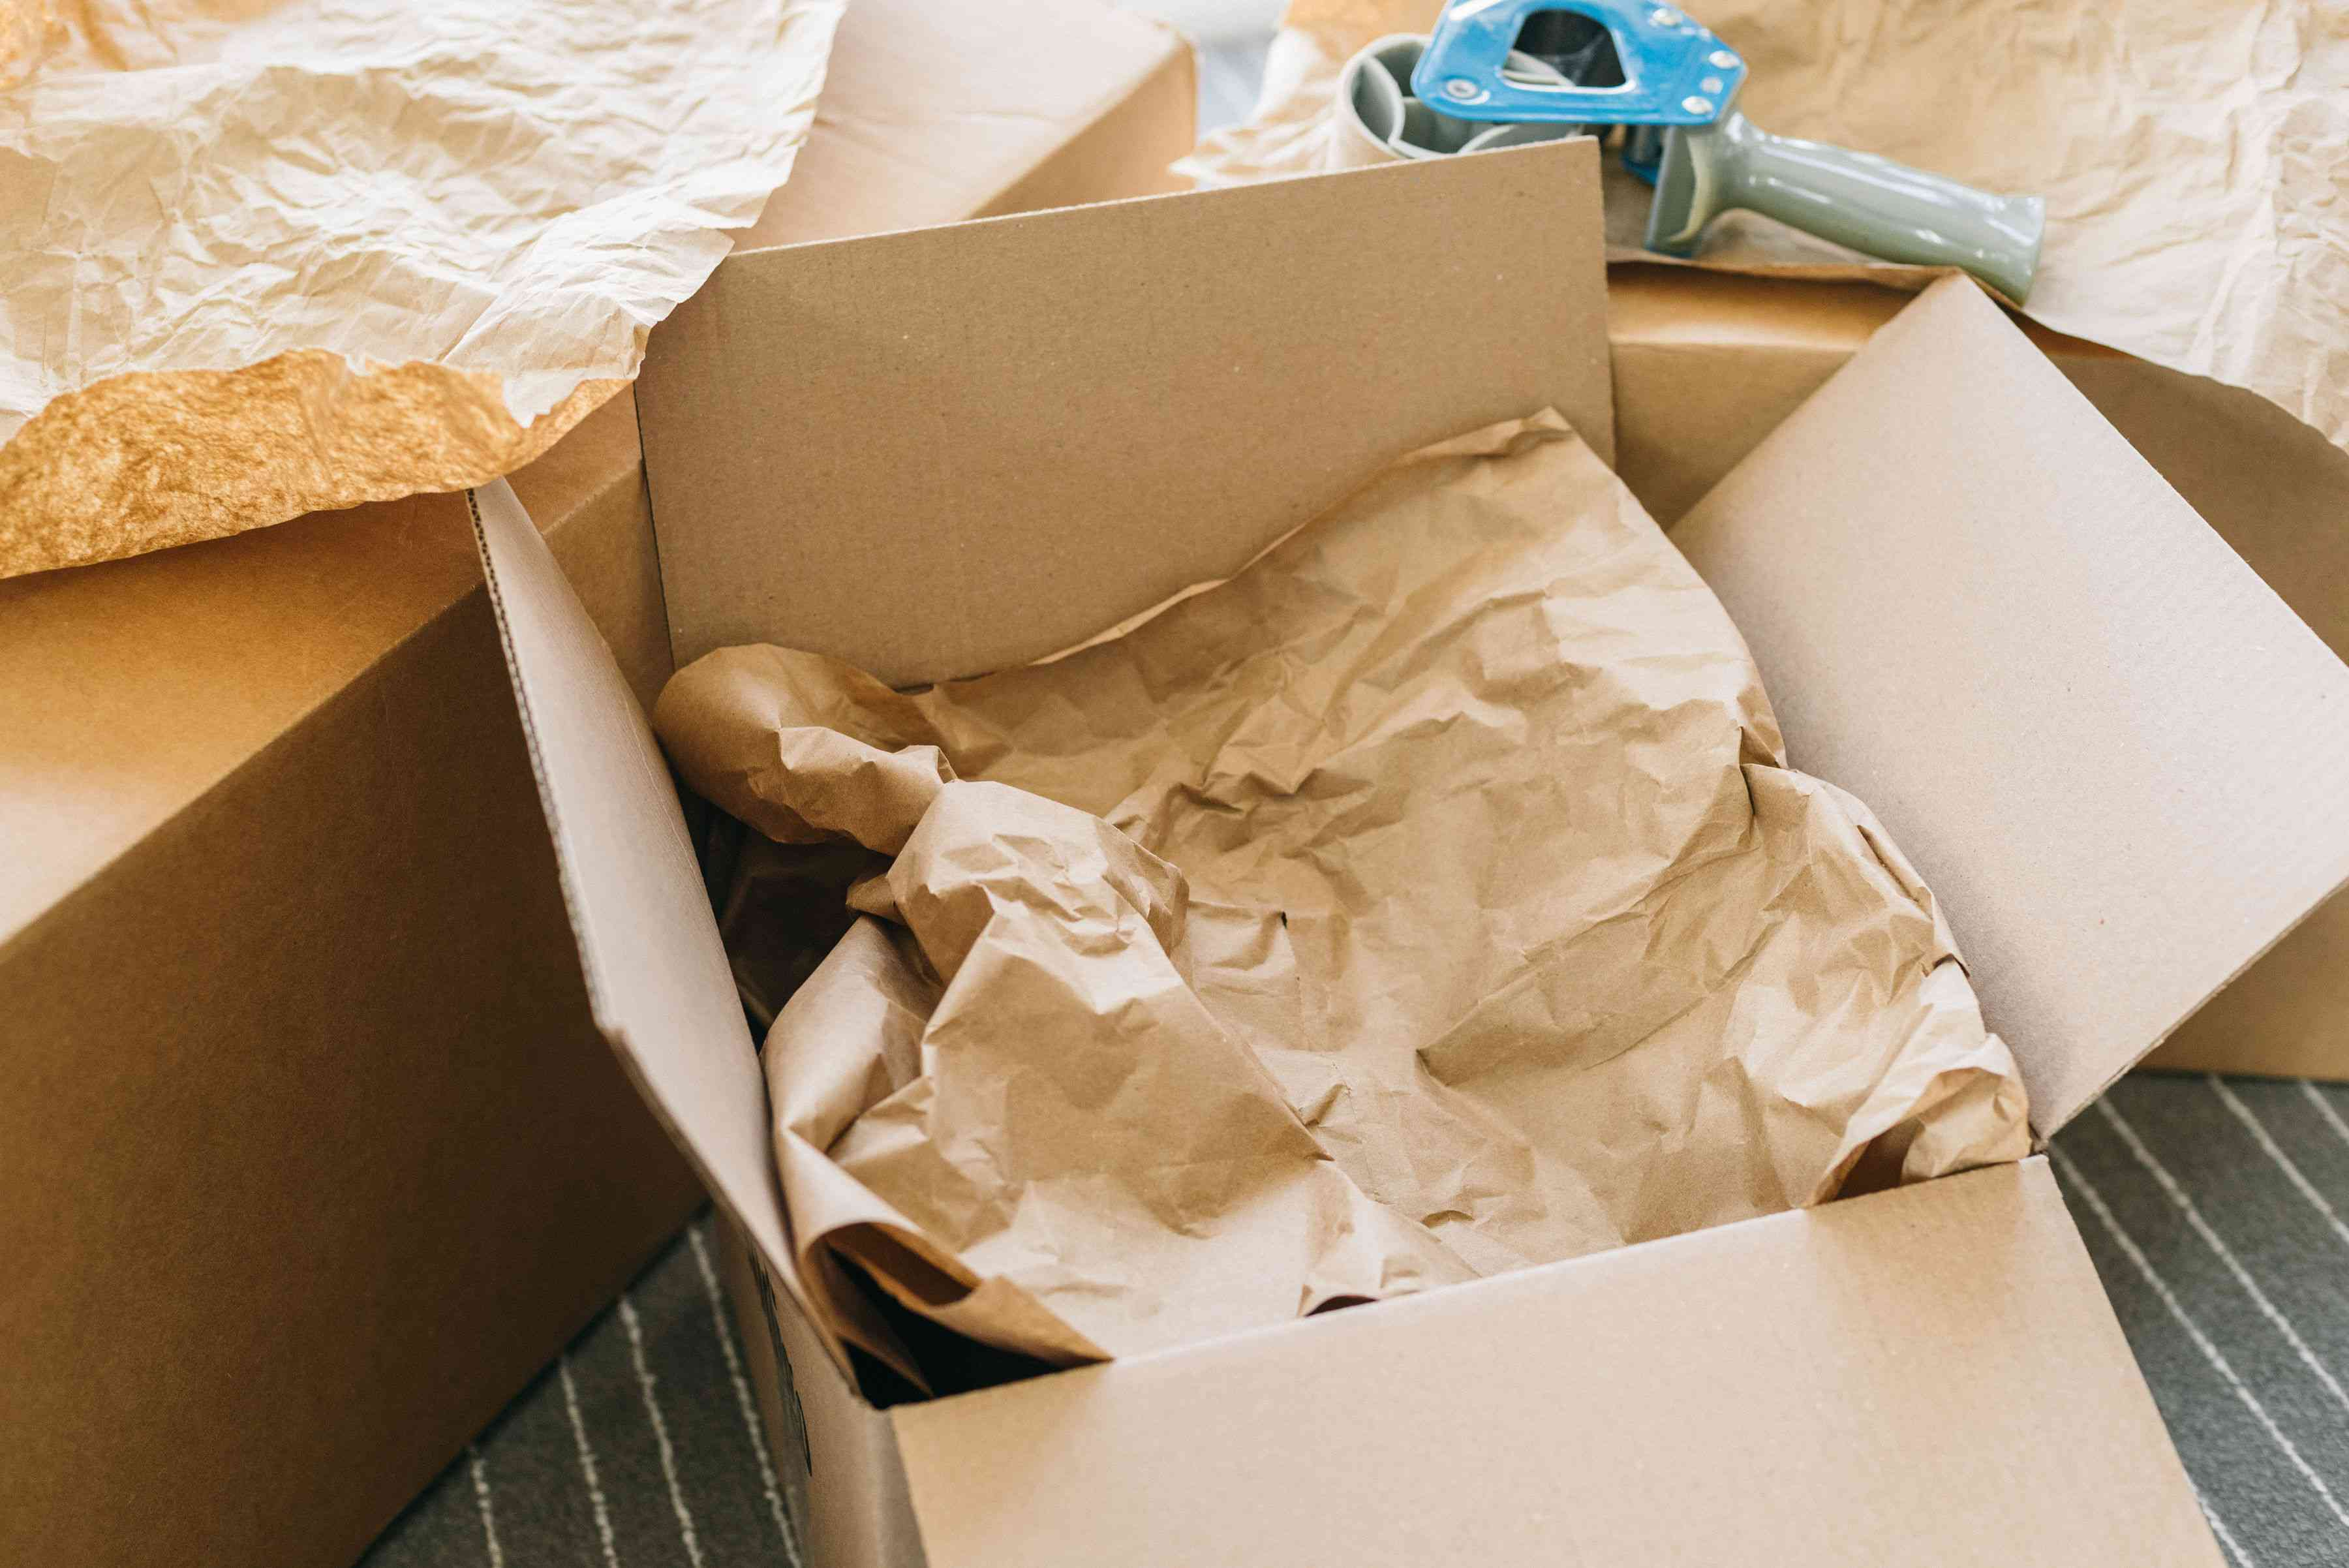 fill up the rest of the box with packing paper